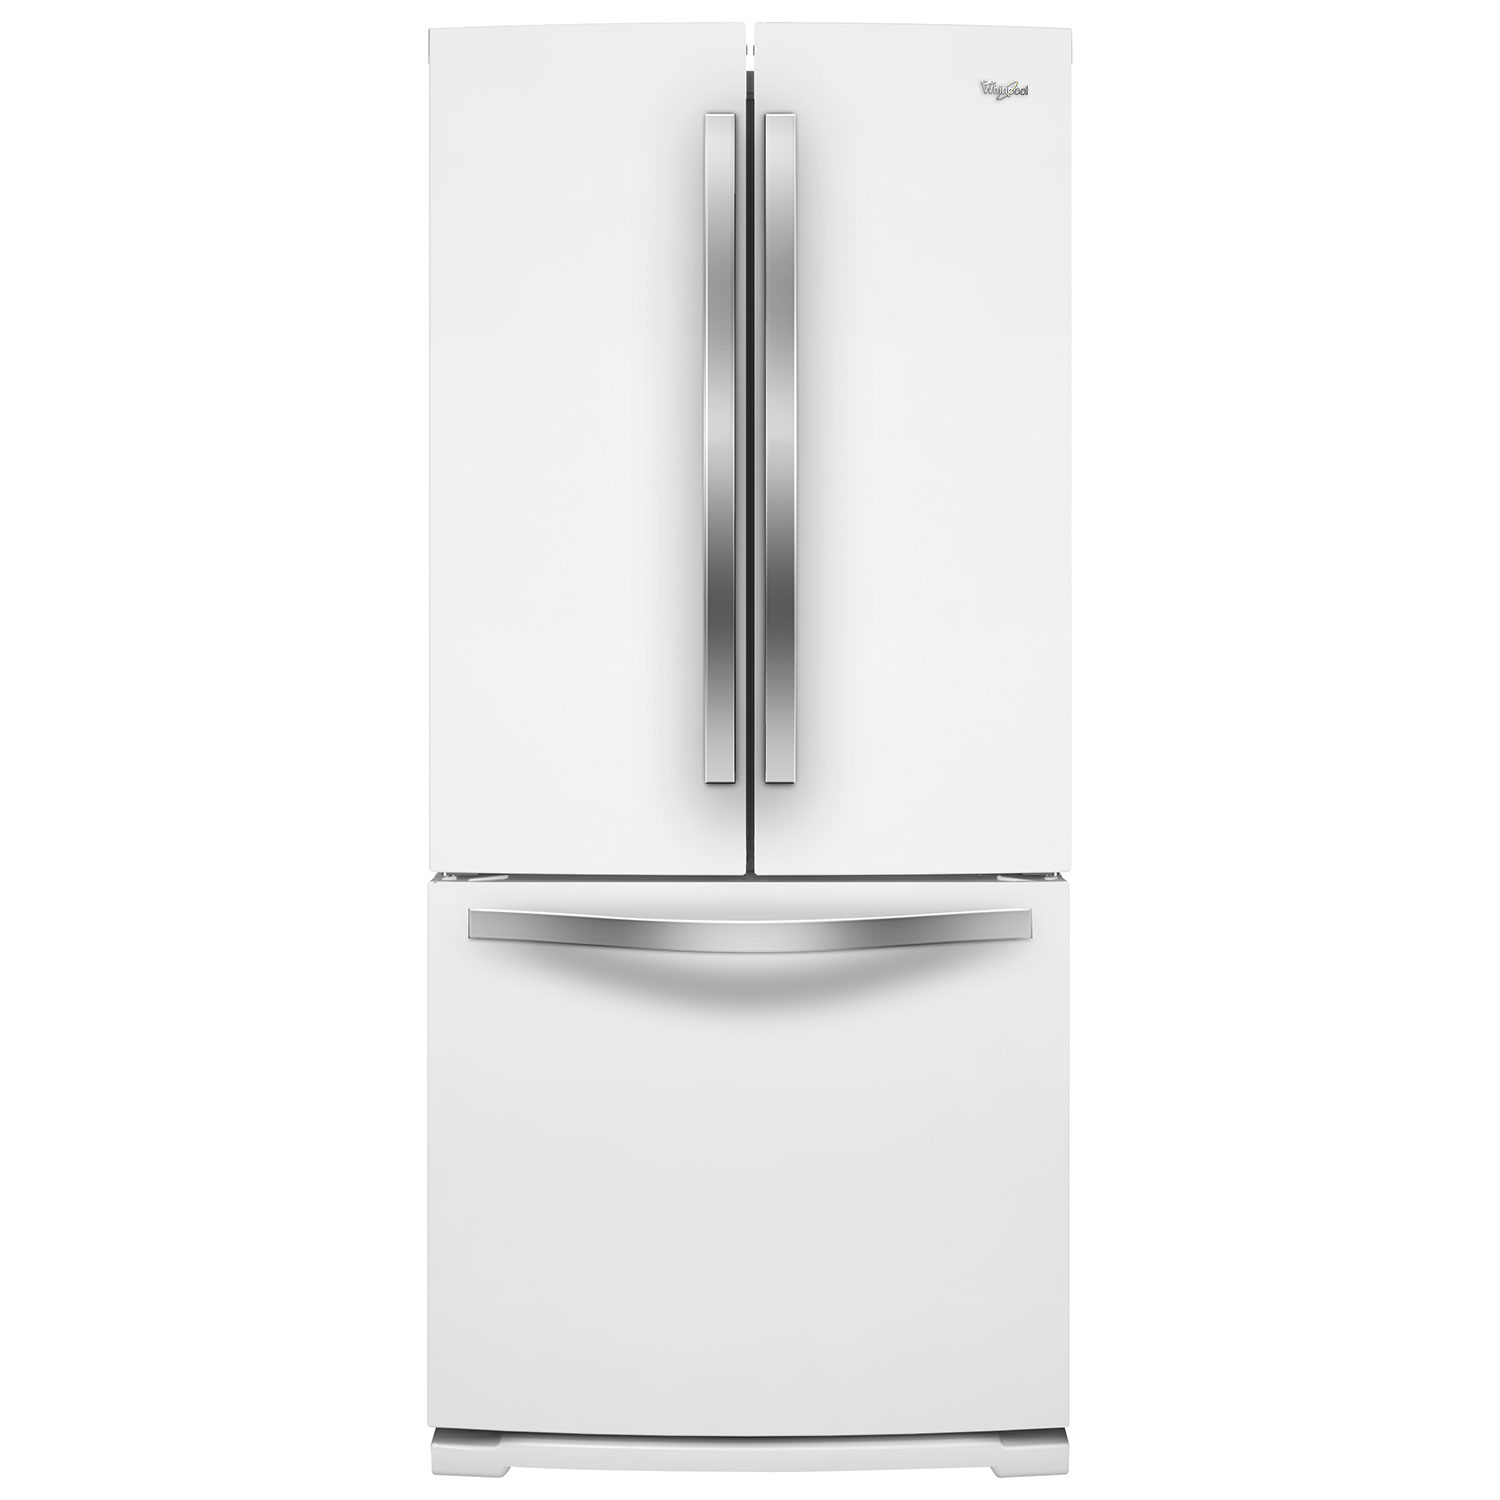 Whirlpool white ice convection microwave - Whirlpool 30 19 7 Cu Ft French Door Refrigerator With Led Lighting White Ice French Door Refrigerators Best Buy Canada